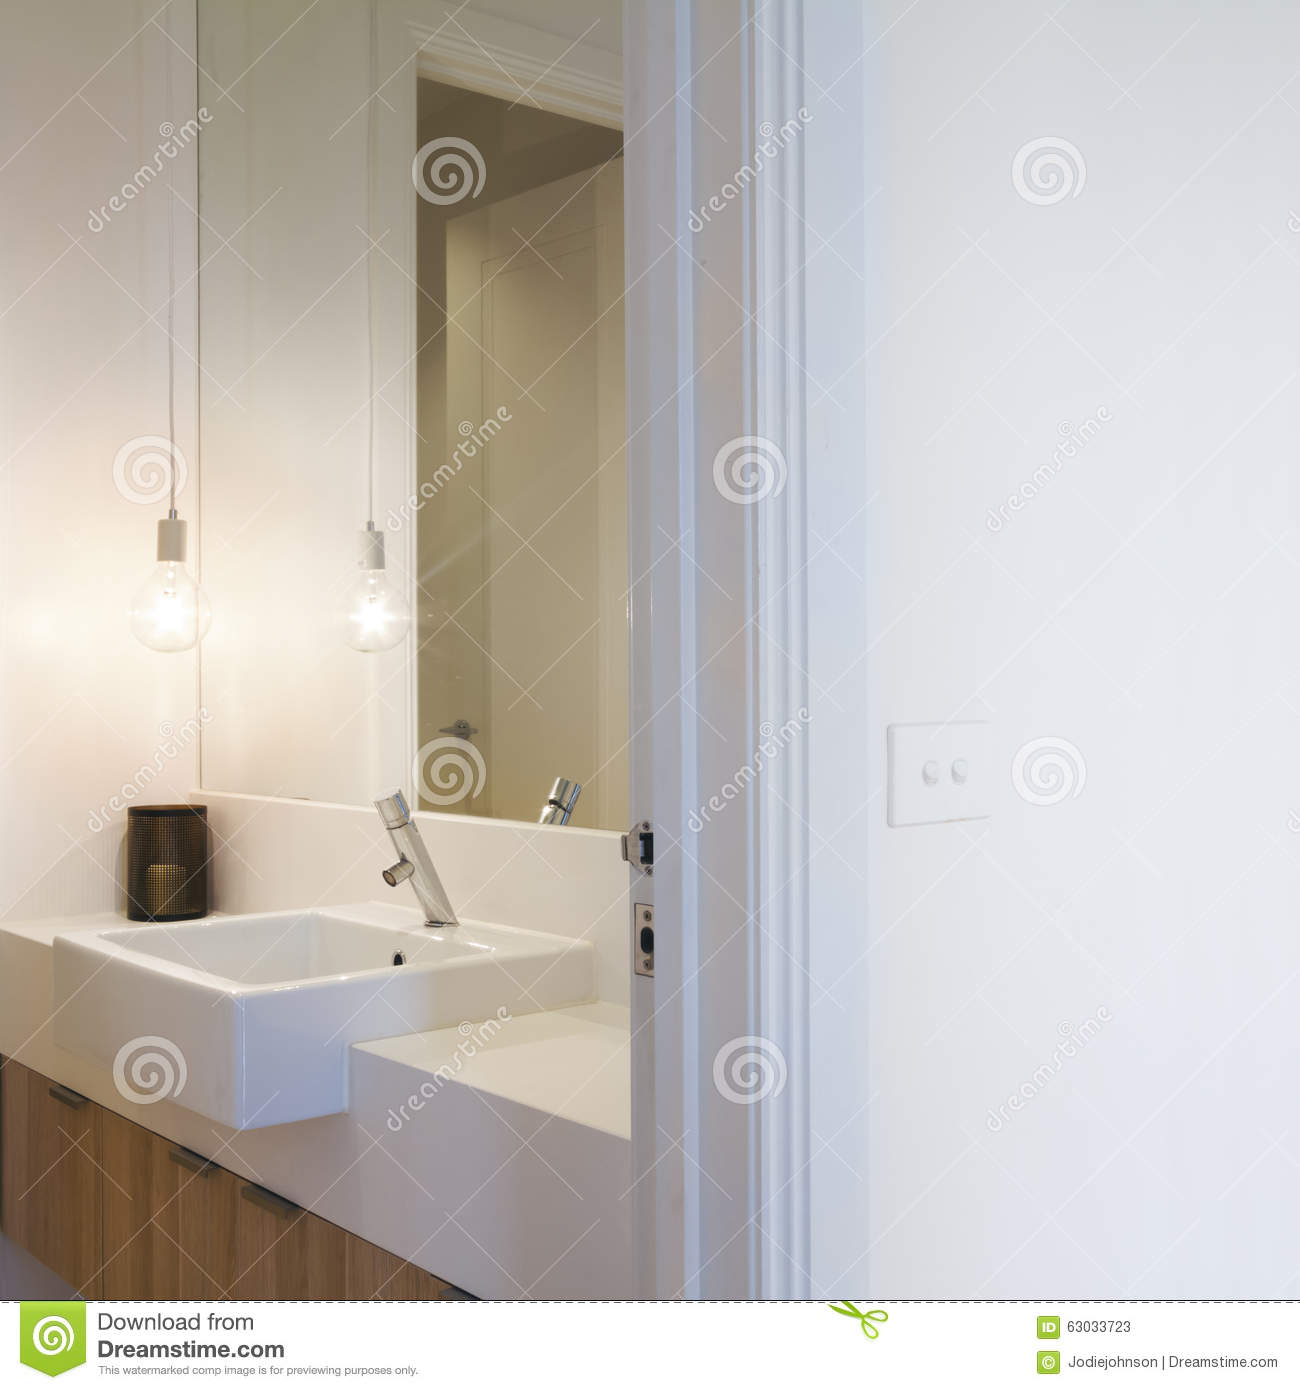 close up of australian light switch on wall and pendant light in rh dreamstime com